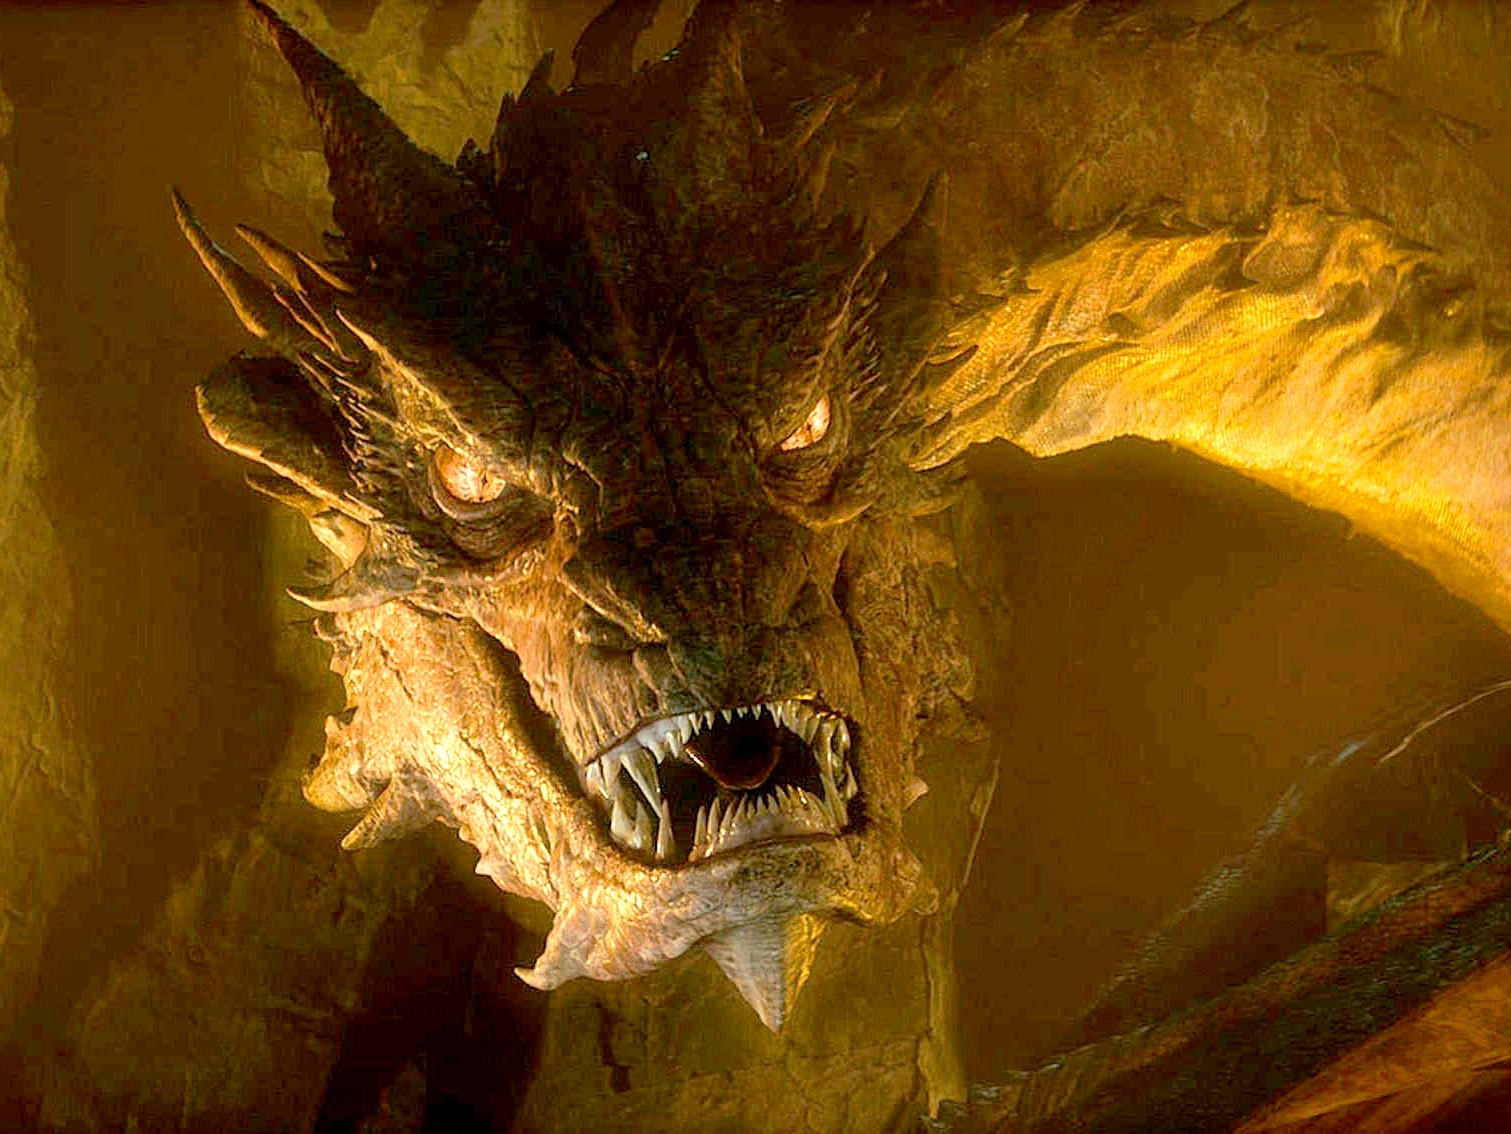 smaug the dragon hobbit - photo #1